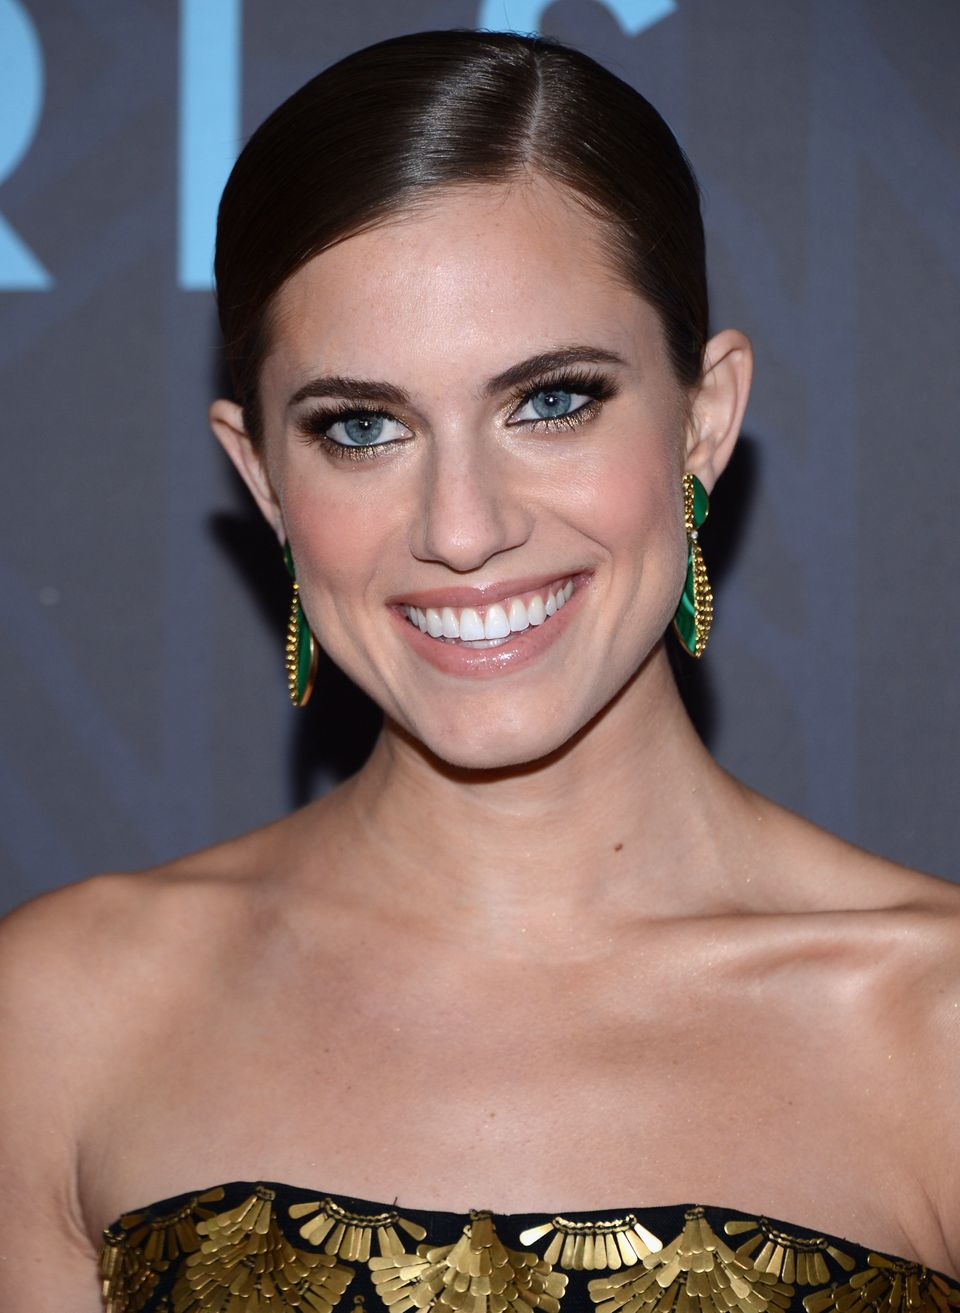 HBO's <em>Girls</em> has been praised for its portrayal of flawed young women, but natural beauty Allison Williams put forth